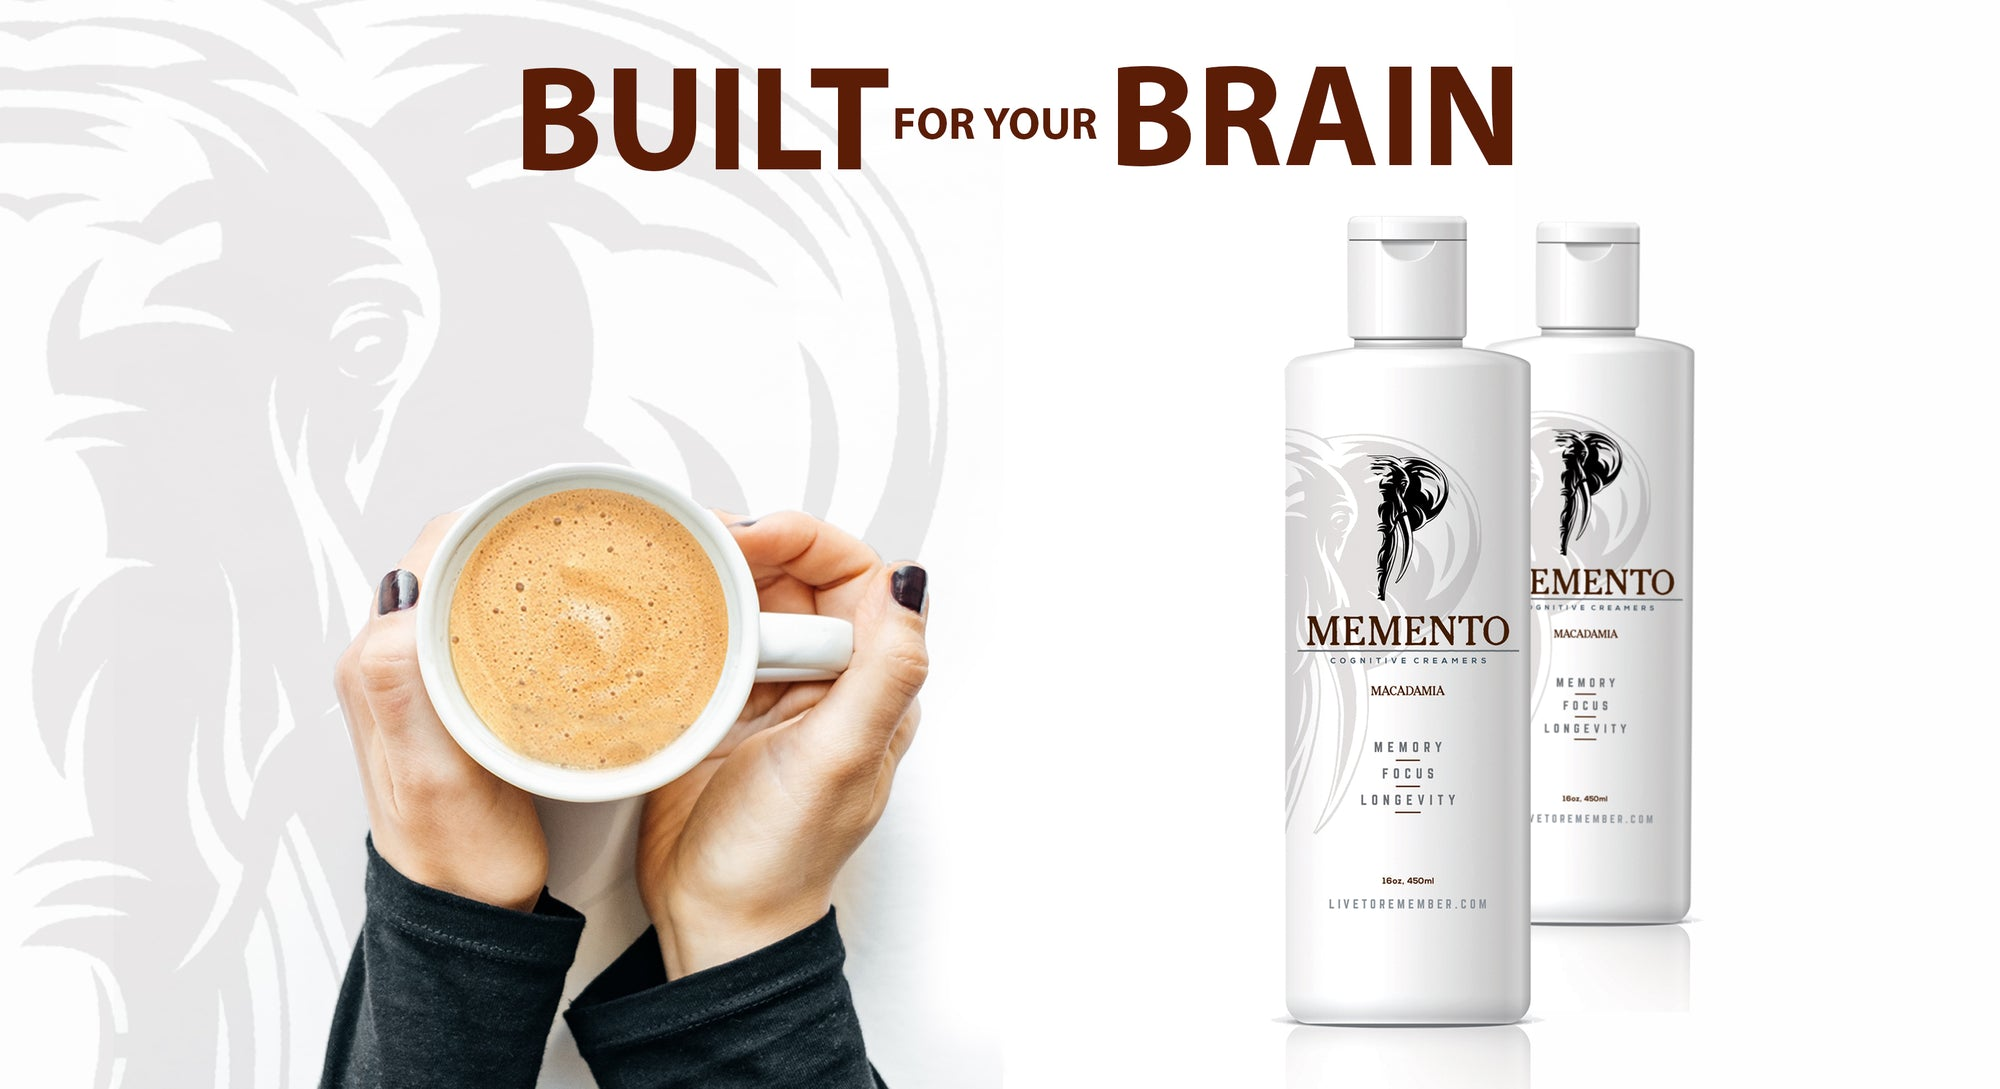 White background with memento elephant logo in background. Two bottles of Memento and hands holding cup of coffee